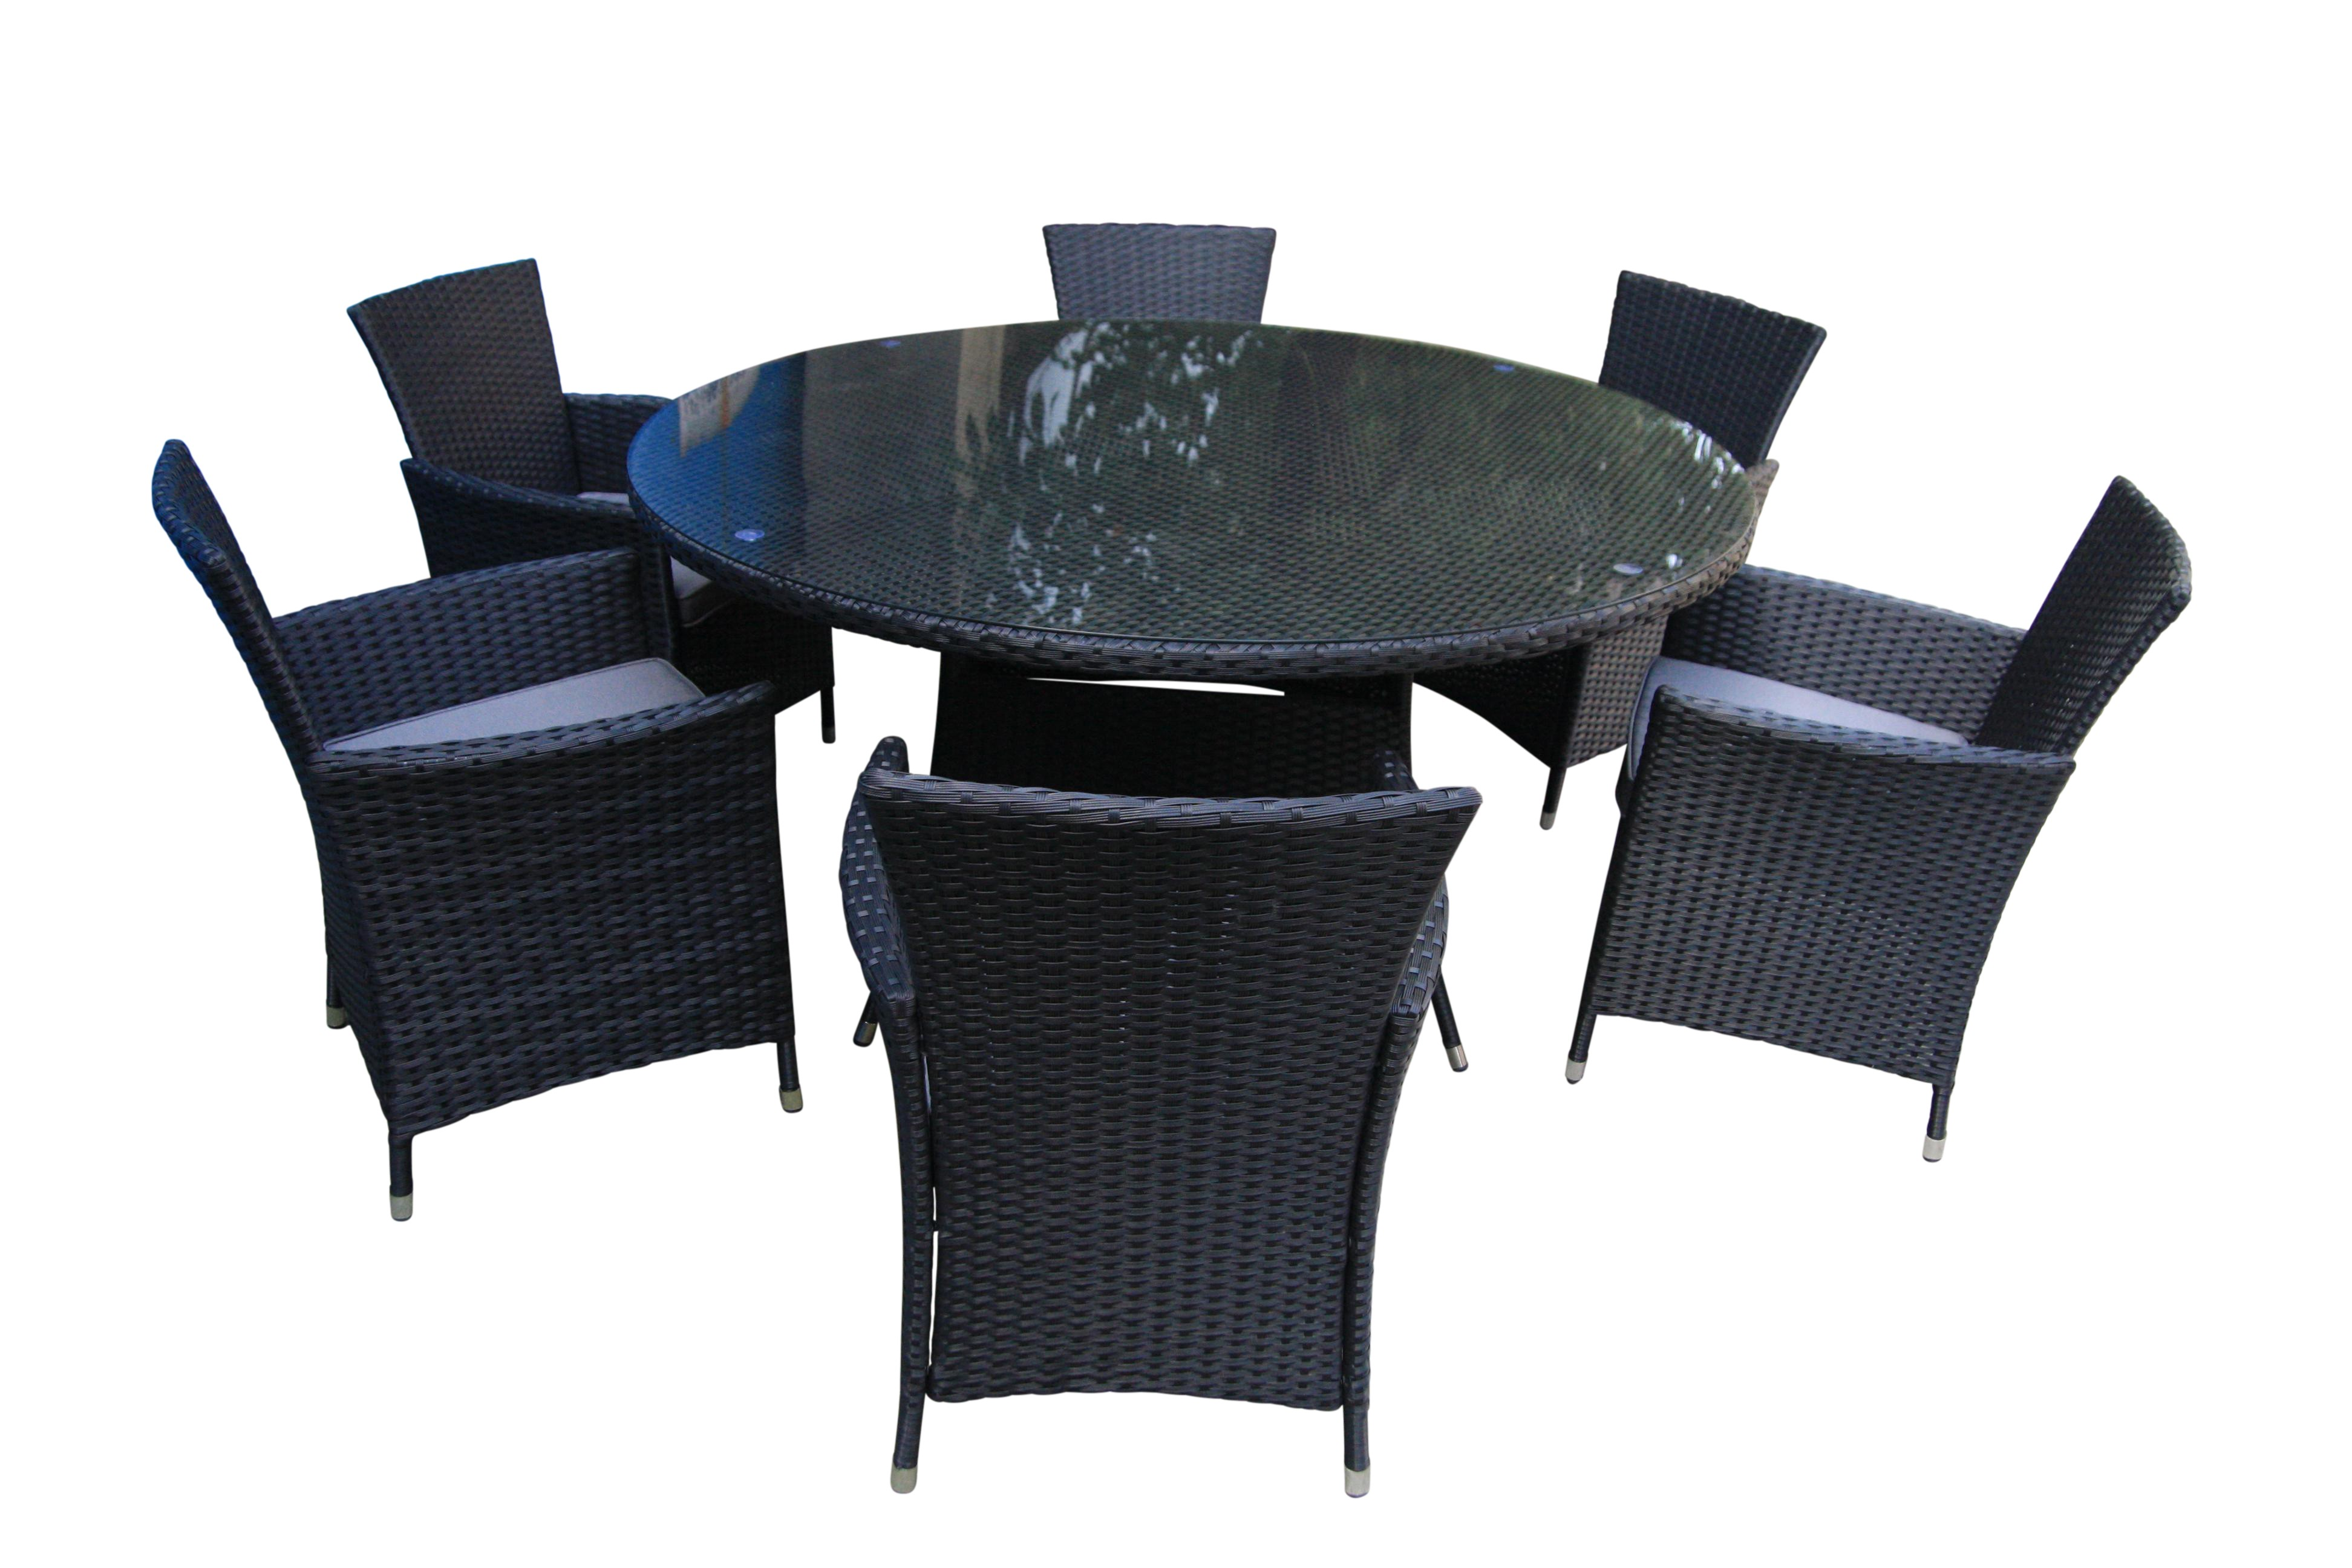 Honolulu 7 Piece 6 Seater Outdoor Round Dining Set Furniture Rattan Steel Frame Wholesales Direct